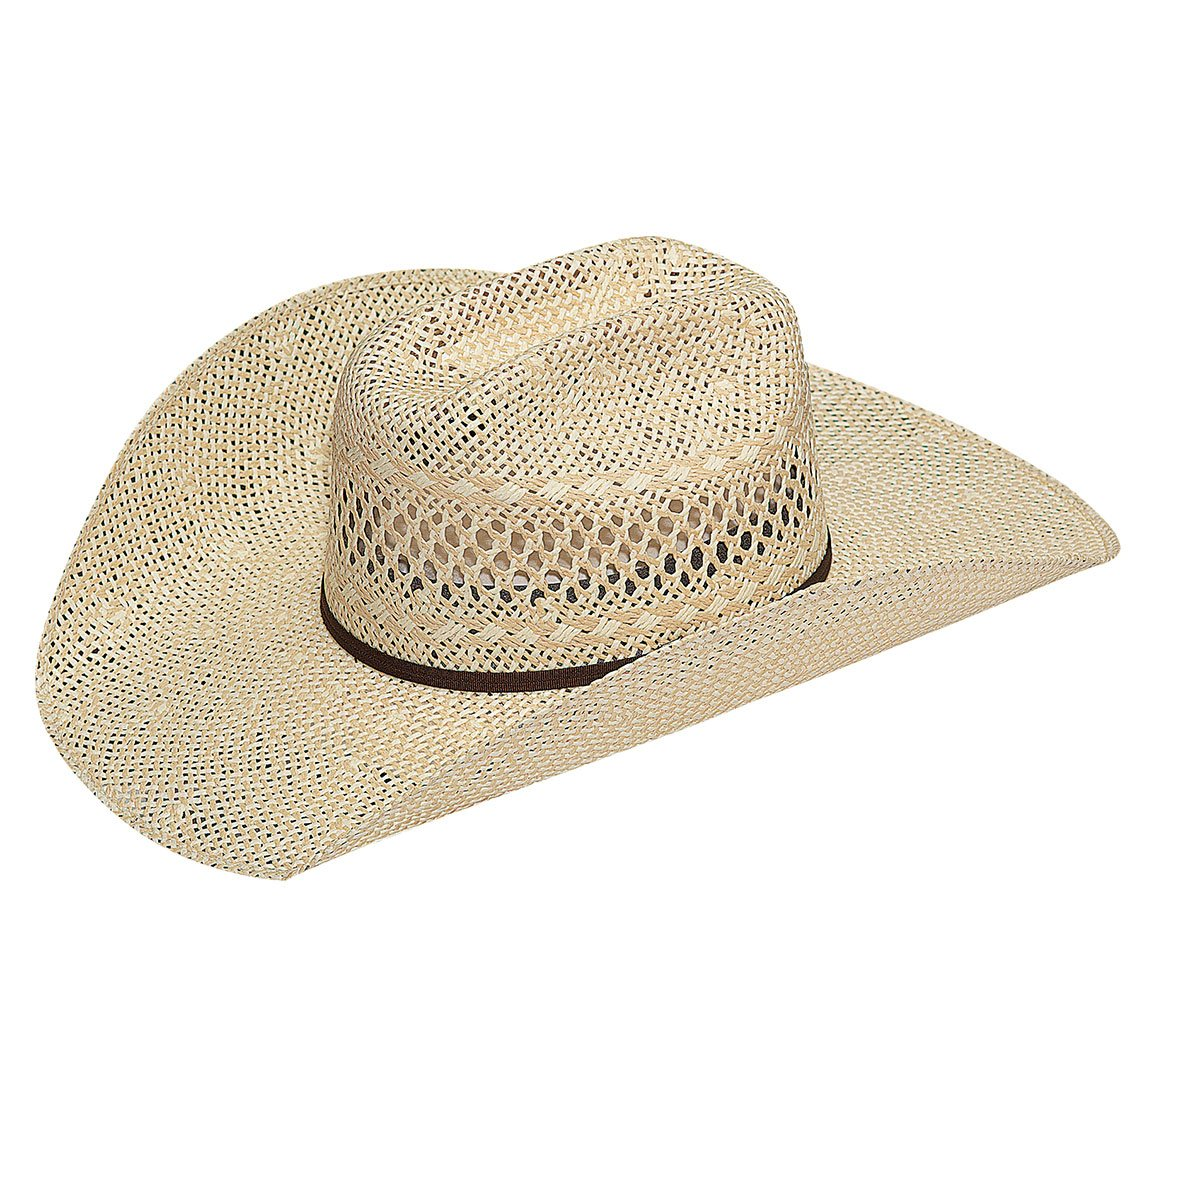 Twisted Weave Western Hat from Twister